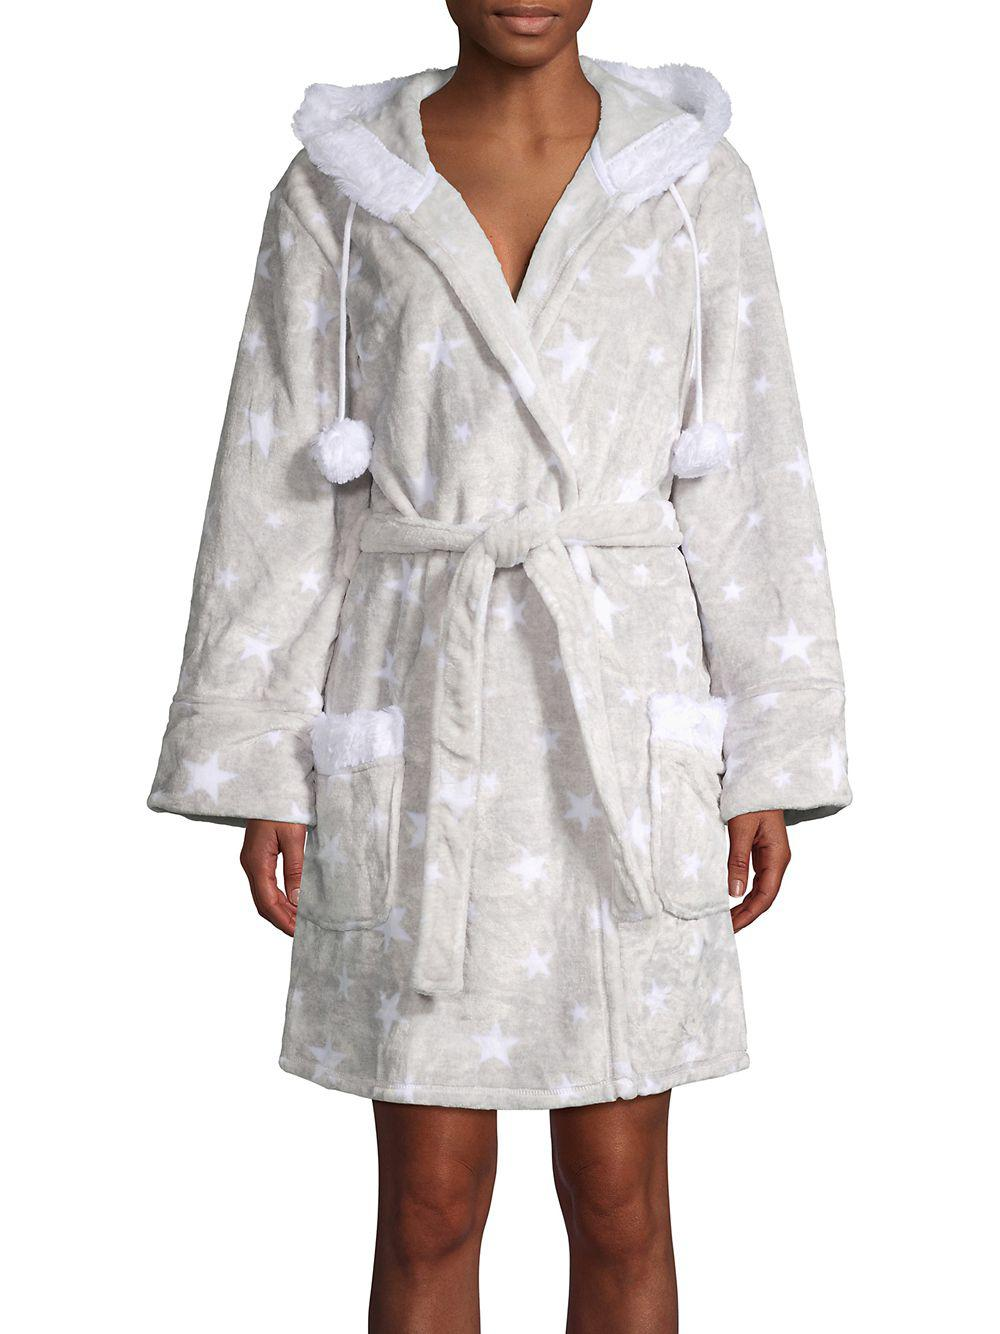 1ae8ce02e000 Pj Salvage Hooded Faux Fur Star Robe in Gray - Lyst